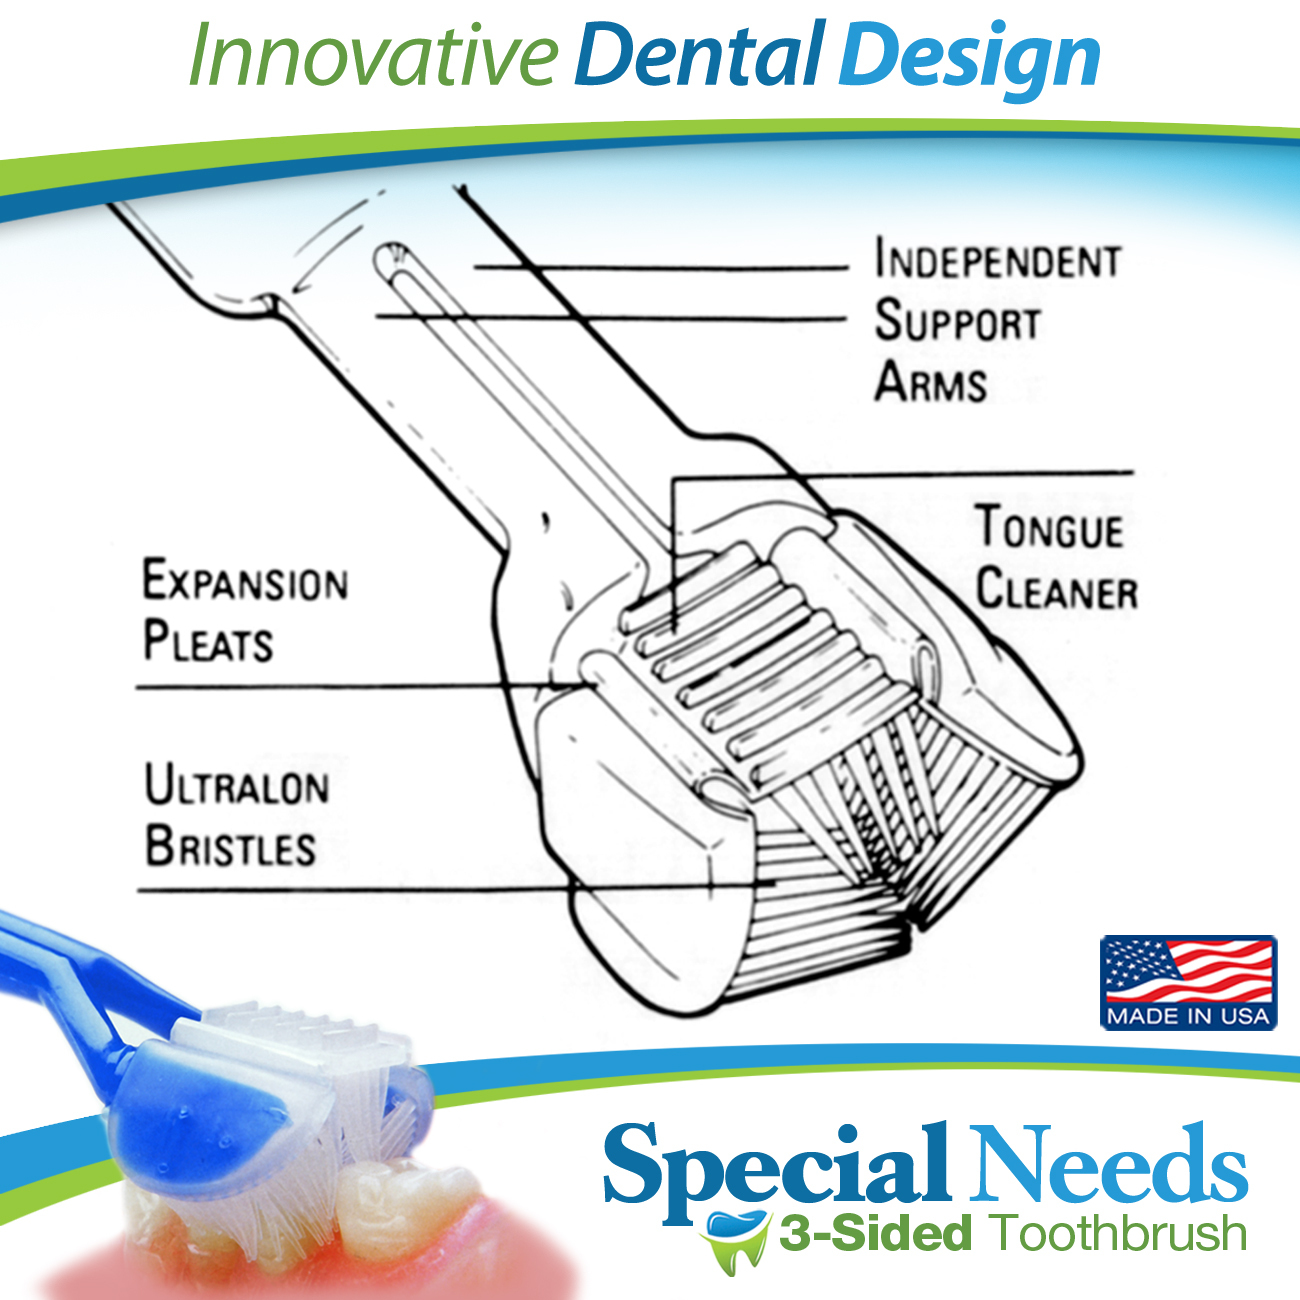 DenTrust SPECIAL NEEDS 3-Sided Toothbrush :: Wrap-Around Design for Complete Cleaning :: Fast, Easy & More Effective :: Caregiver's Assisted Brushing